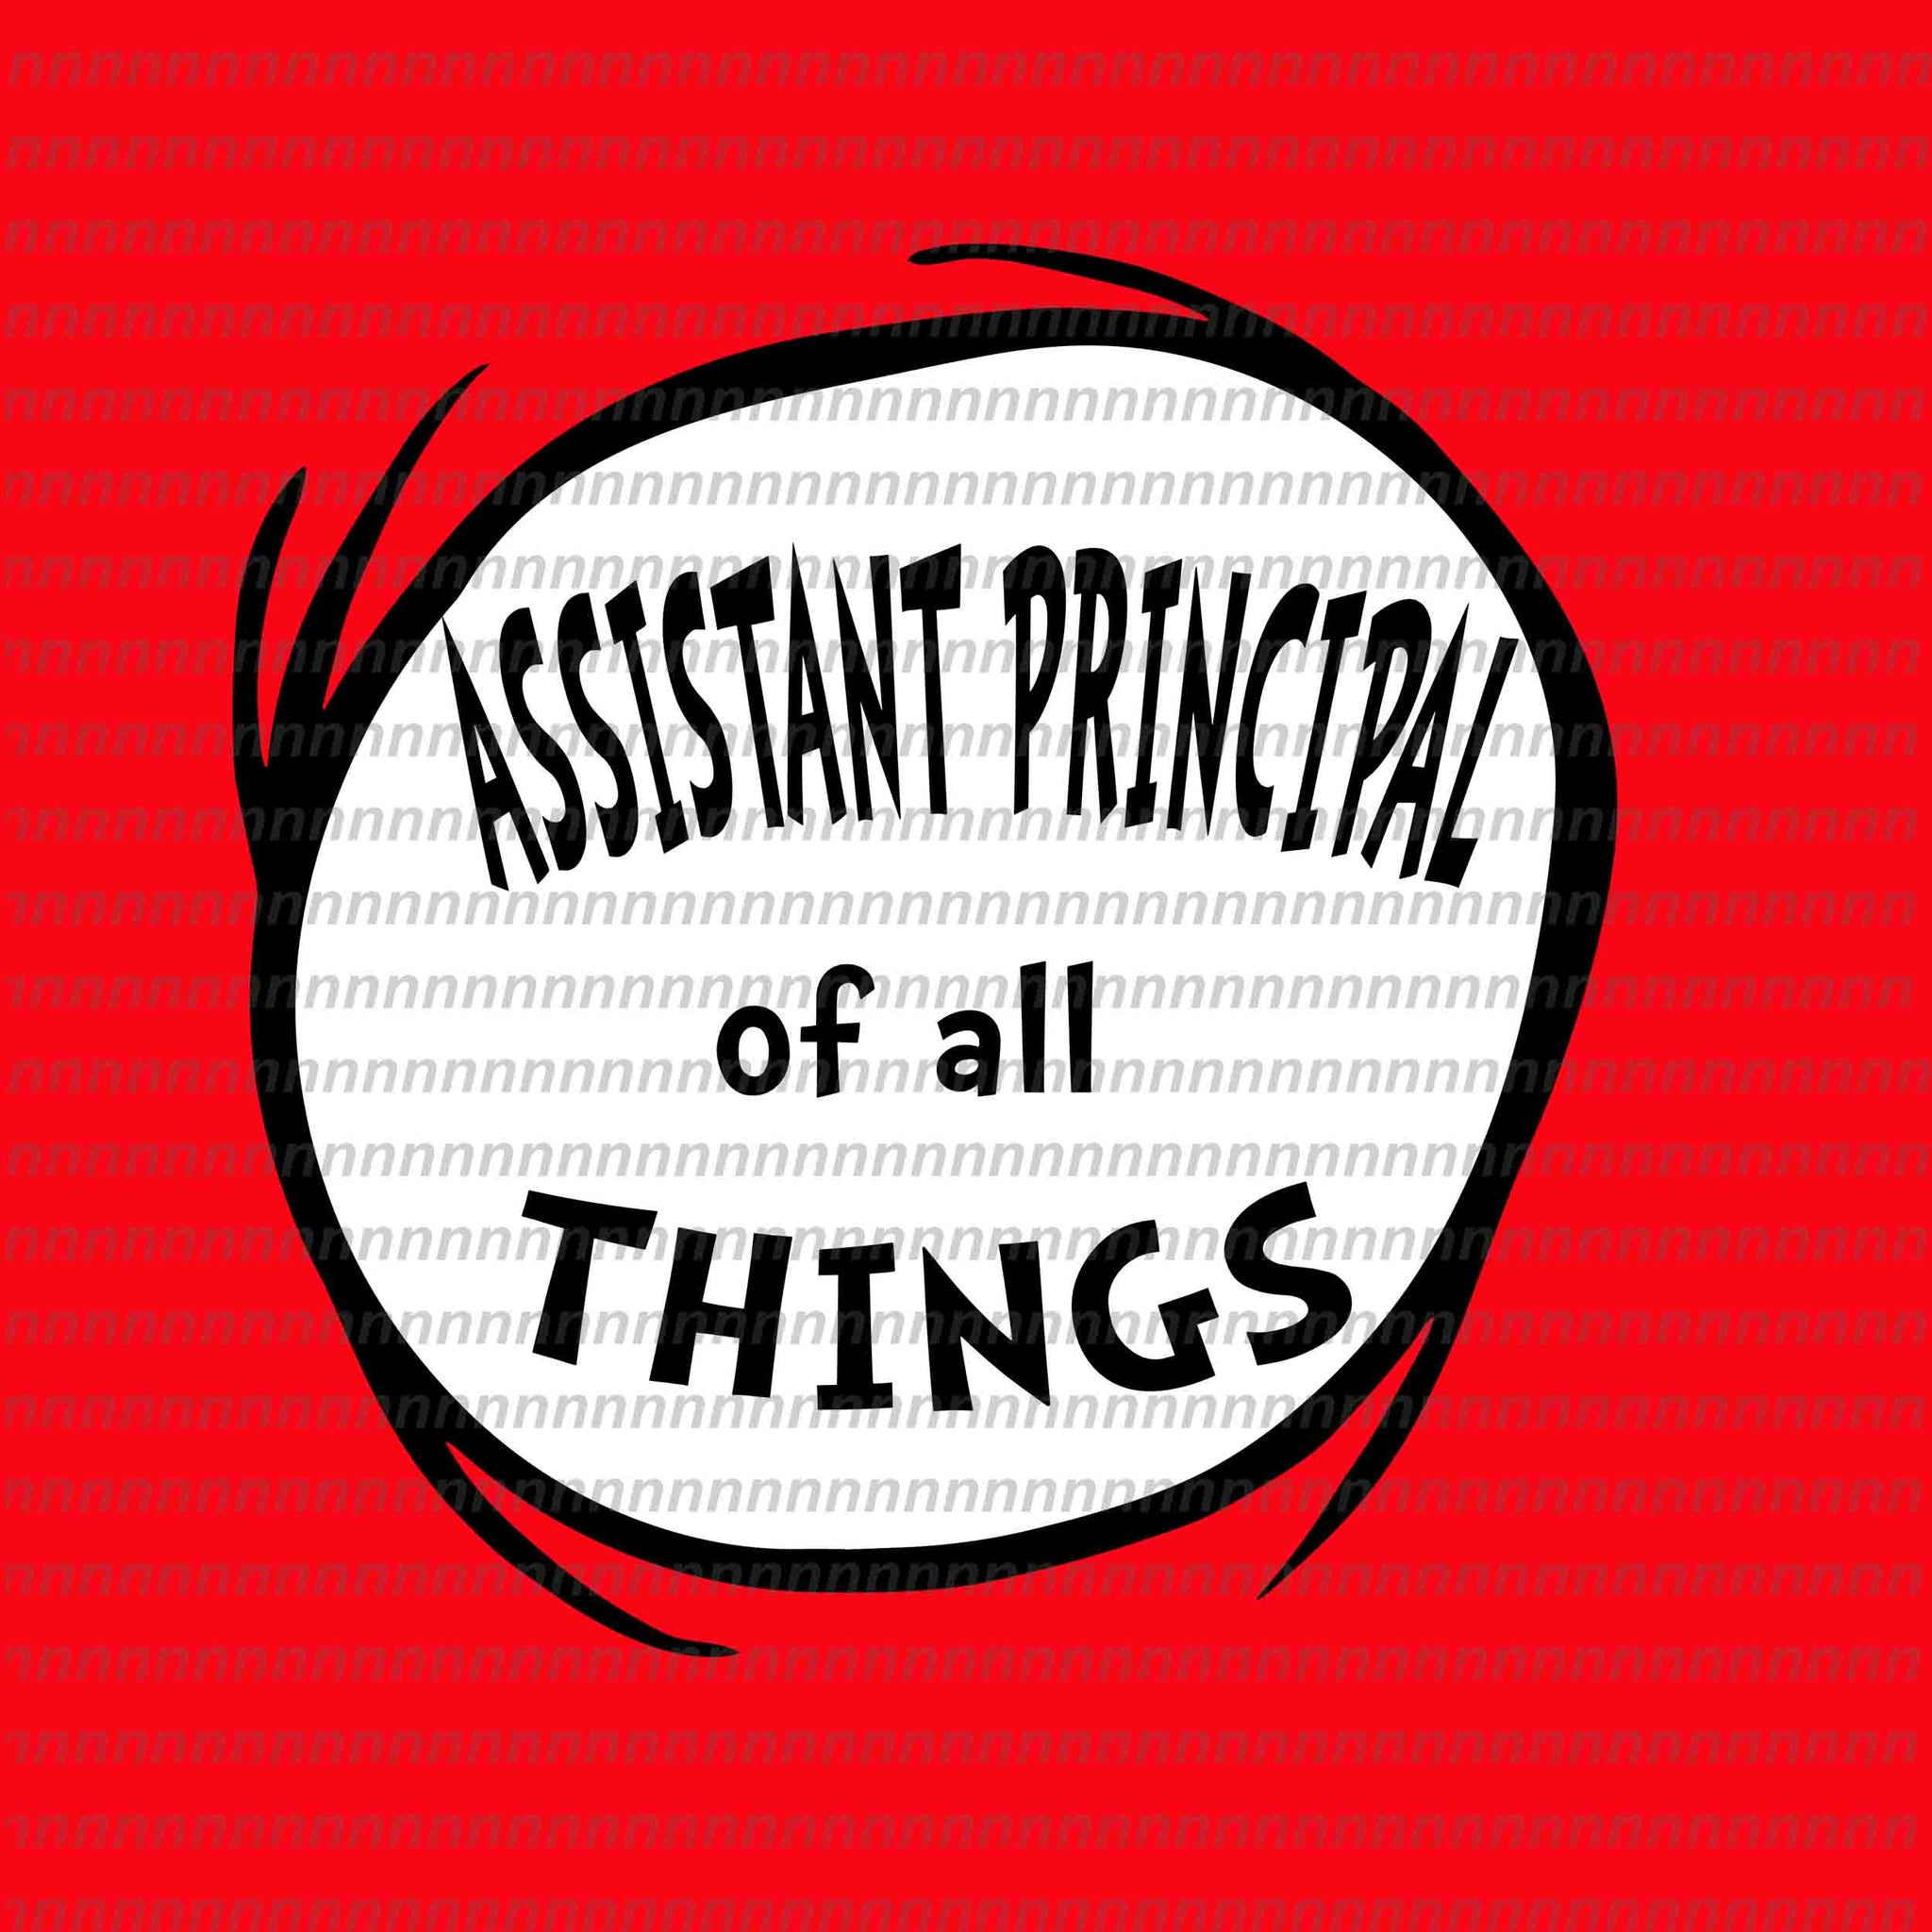 Assistant principal of all things, dr seuss svg,dr seuss vector, dr seuss quote, dr seuss design, Cat in the hat svg, thing 1 thing 2 thing 3, svg, png, dxf, eps file